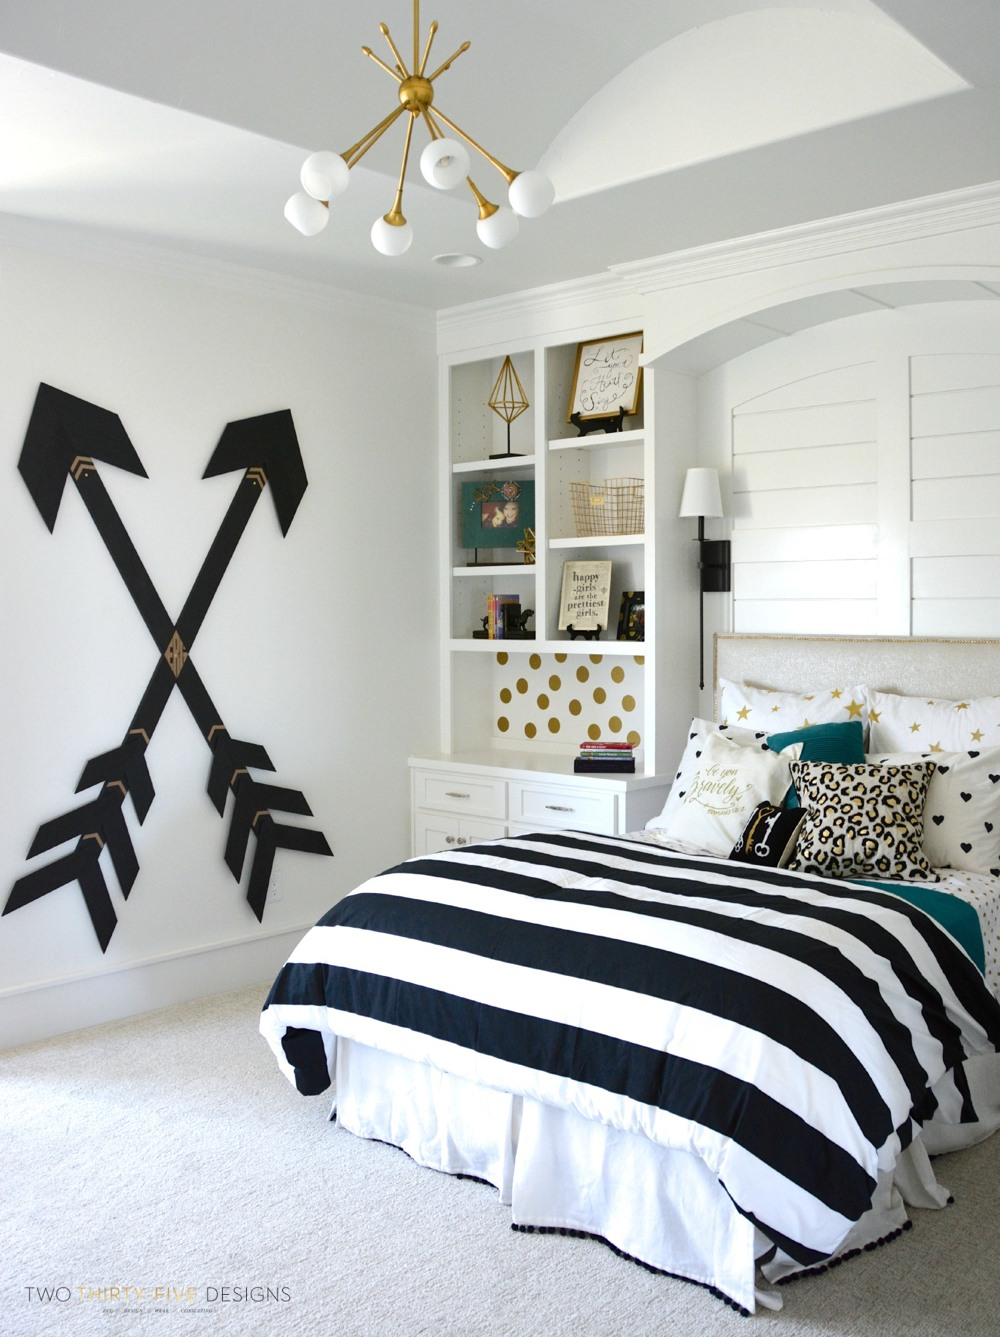 Incroyable Pottery Barn Teen Girl Bedroom With Wooden Wall Arrows